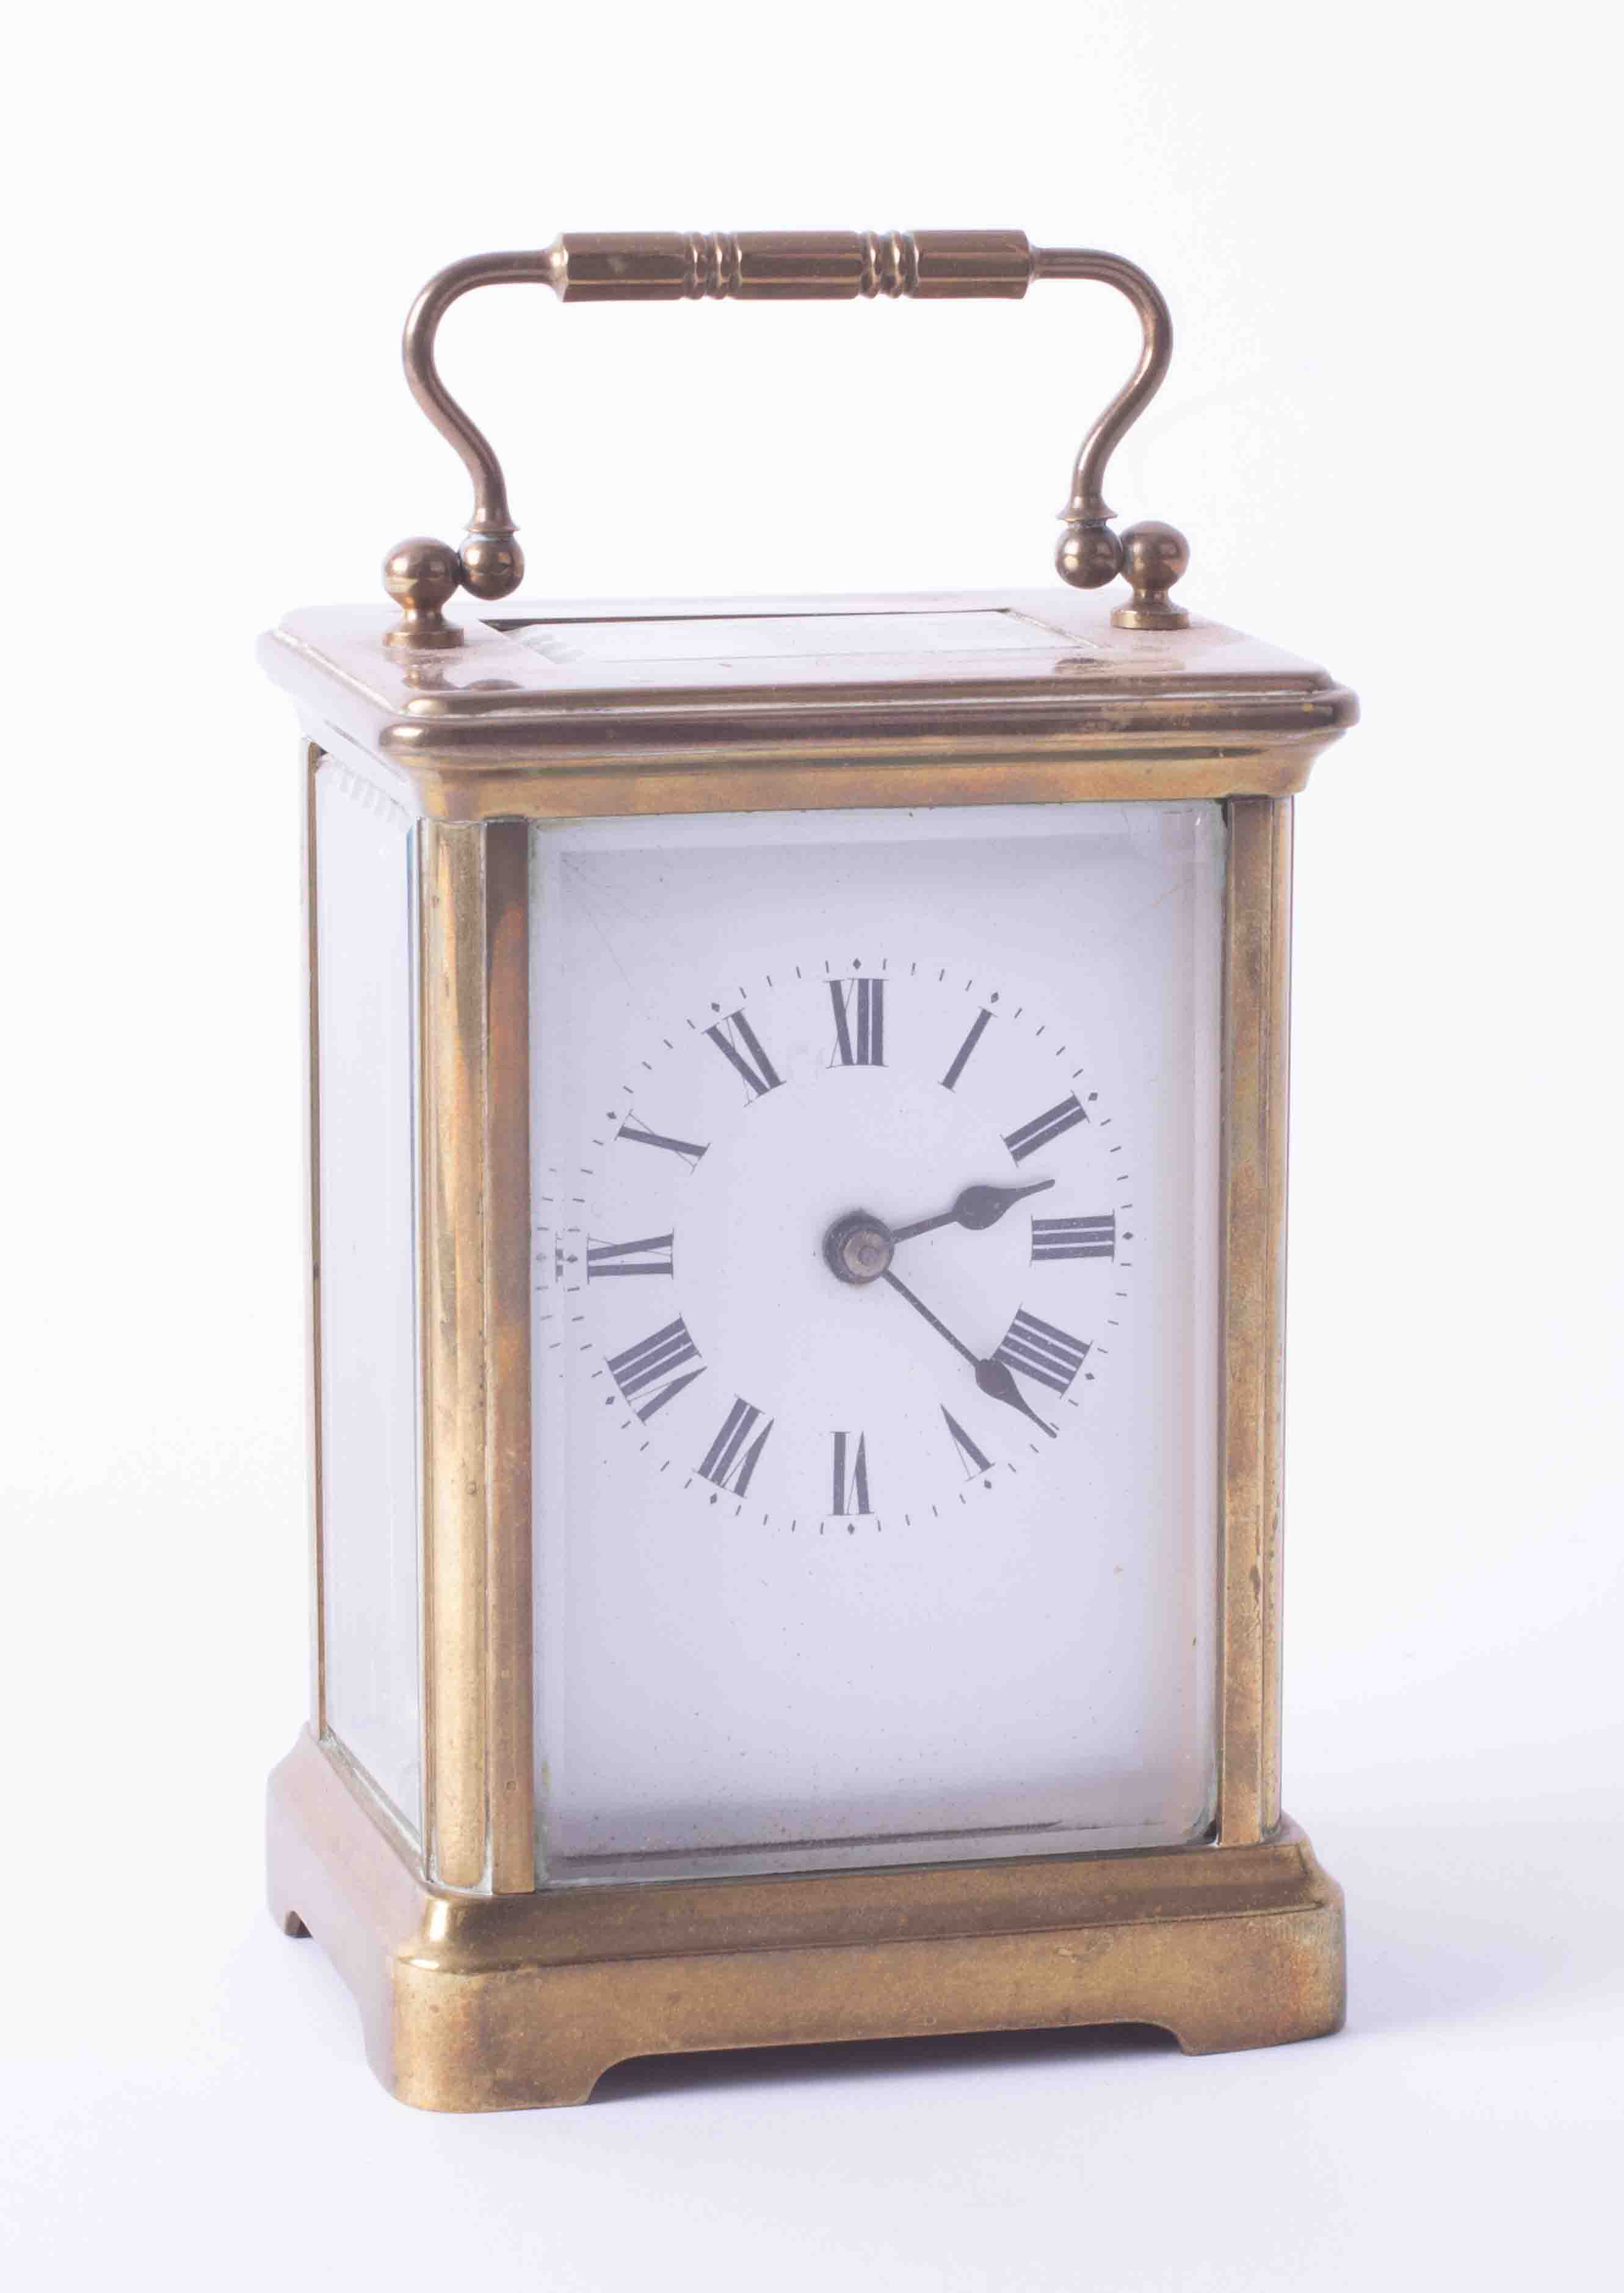 A French brass faced carriage clock with platform escapement, two keys, hairline crack to dial.